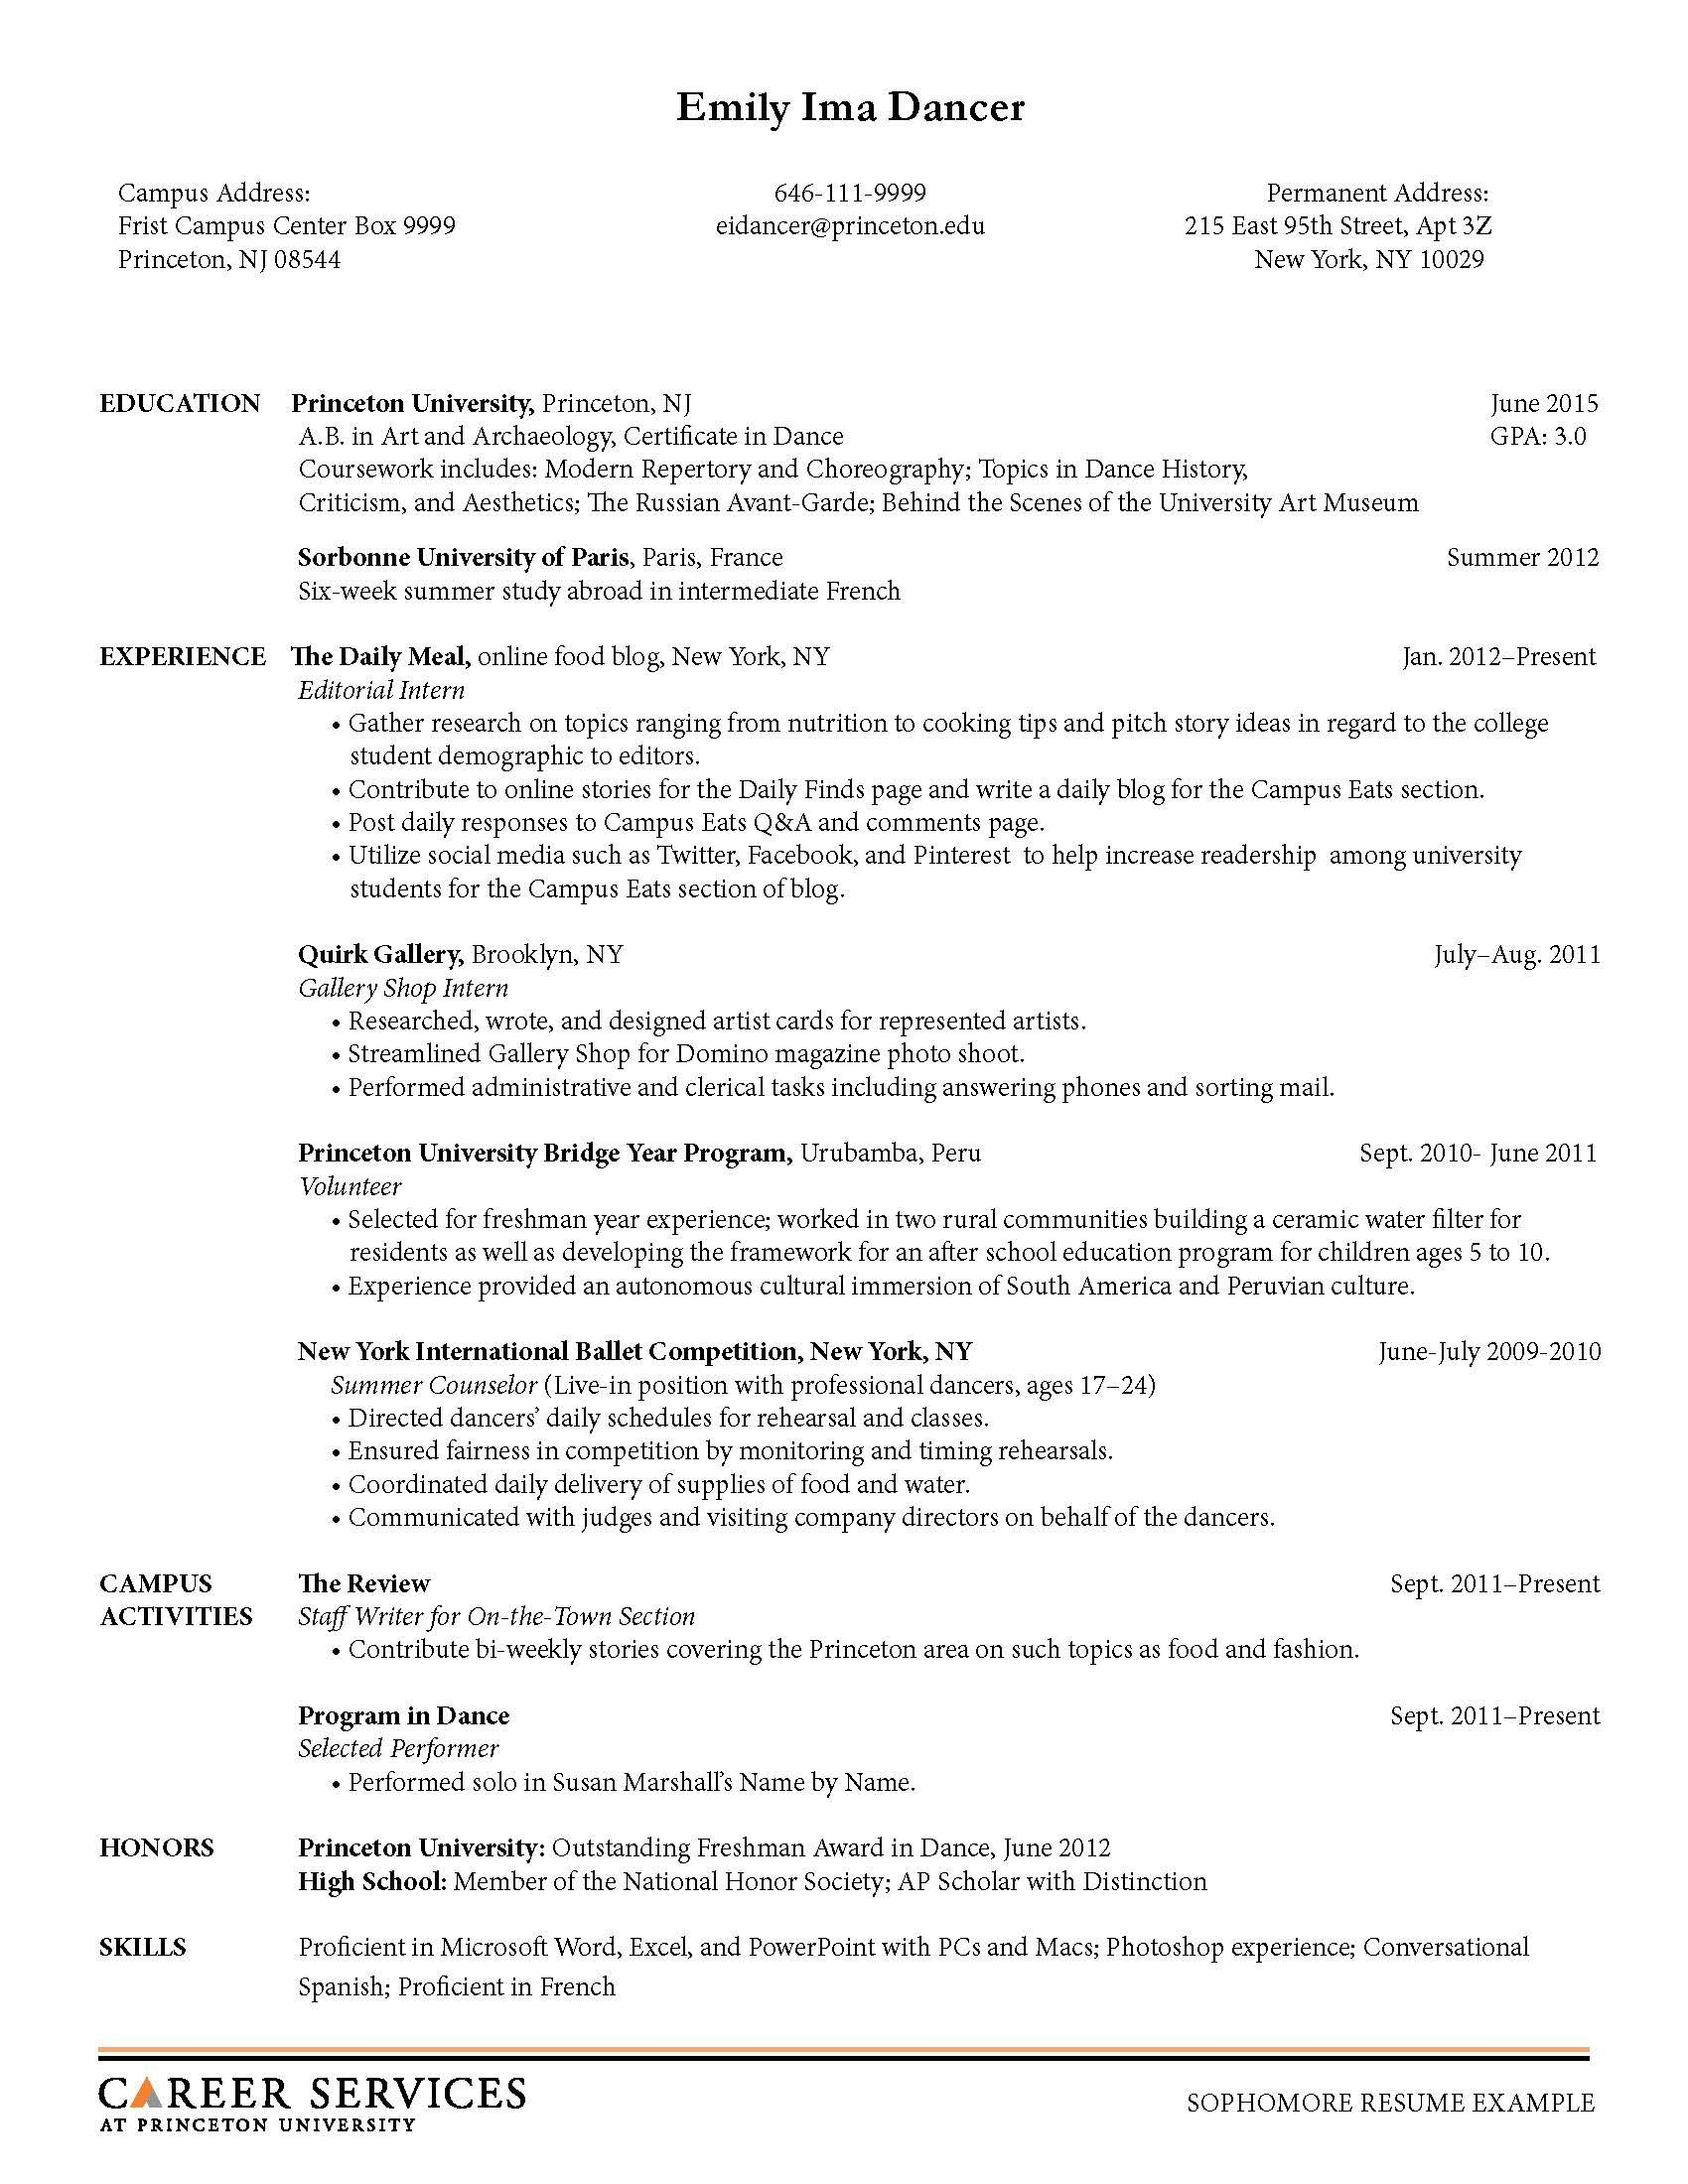 Opposenewapstandardsus  Pleasing Sample Resume Resume And Career On Pinterest With Magnificent Work Study Resume Besides Emergency Nurse Resume Furthermore References For Resume Format With Enchanting Free Professional Resume Builder Also Example Engineering Resume In Addition Resume With Gpa And Dance Resume Sample As Well As Camp Counselor Job Description For Resume Additionally How To Write A Resume Examples From Pinterestcom With Opposenewapstandardsus  Magnificent Sample Resume Resume And Career On Pinterest With Enchanting Work Study Resume Besides Emergency Nurse Resume Furthermore References For Resume Format And Pleasing Free Professional Resume Builder Also Example Engineering Resume In Addition Resume With Gpa From Pinterestcom